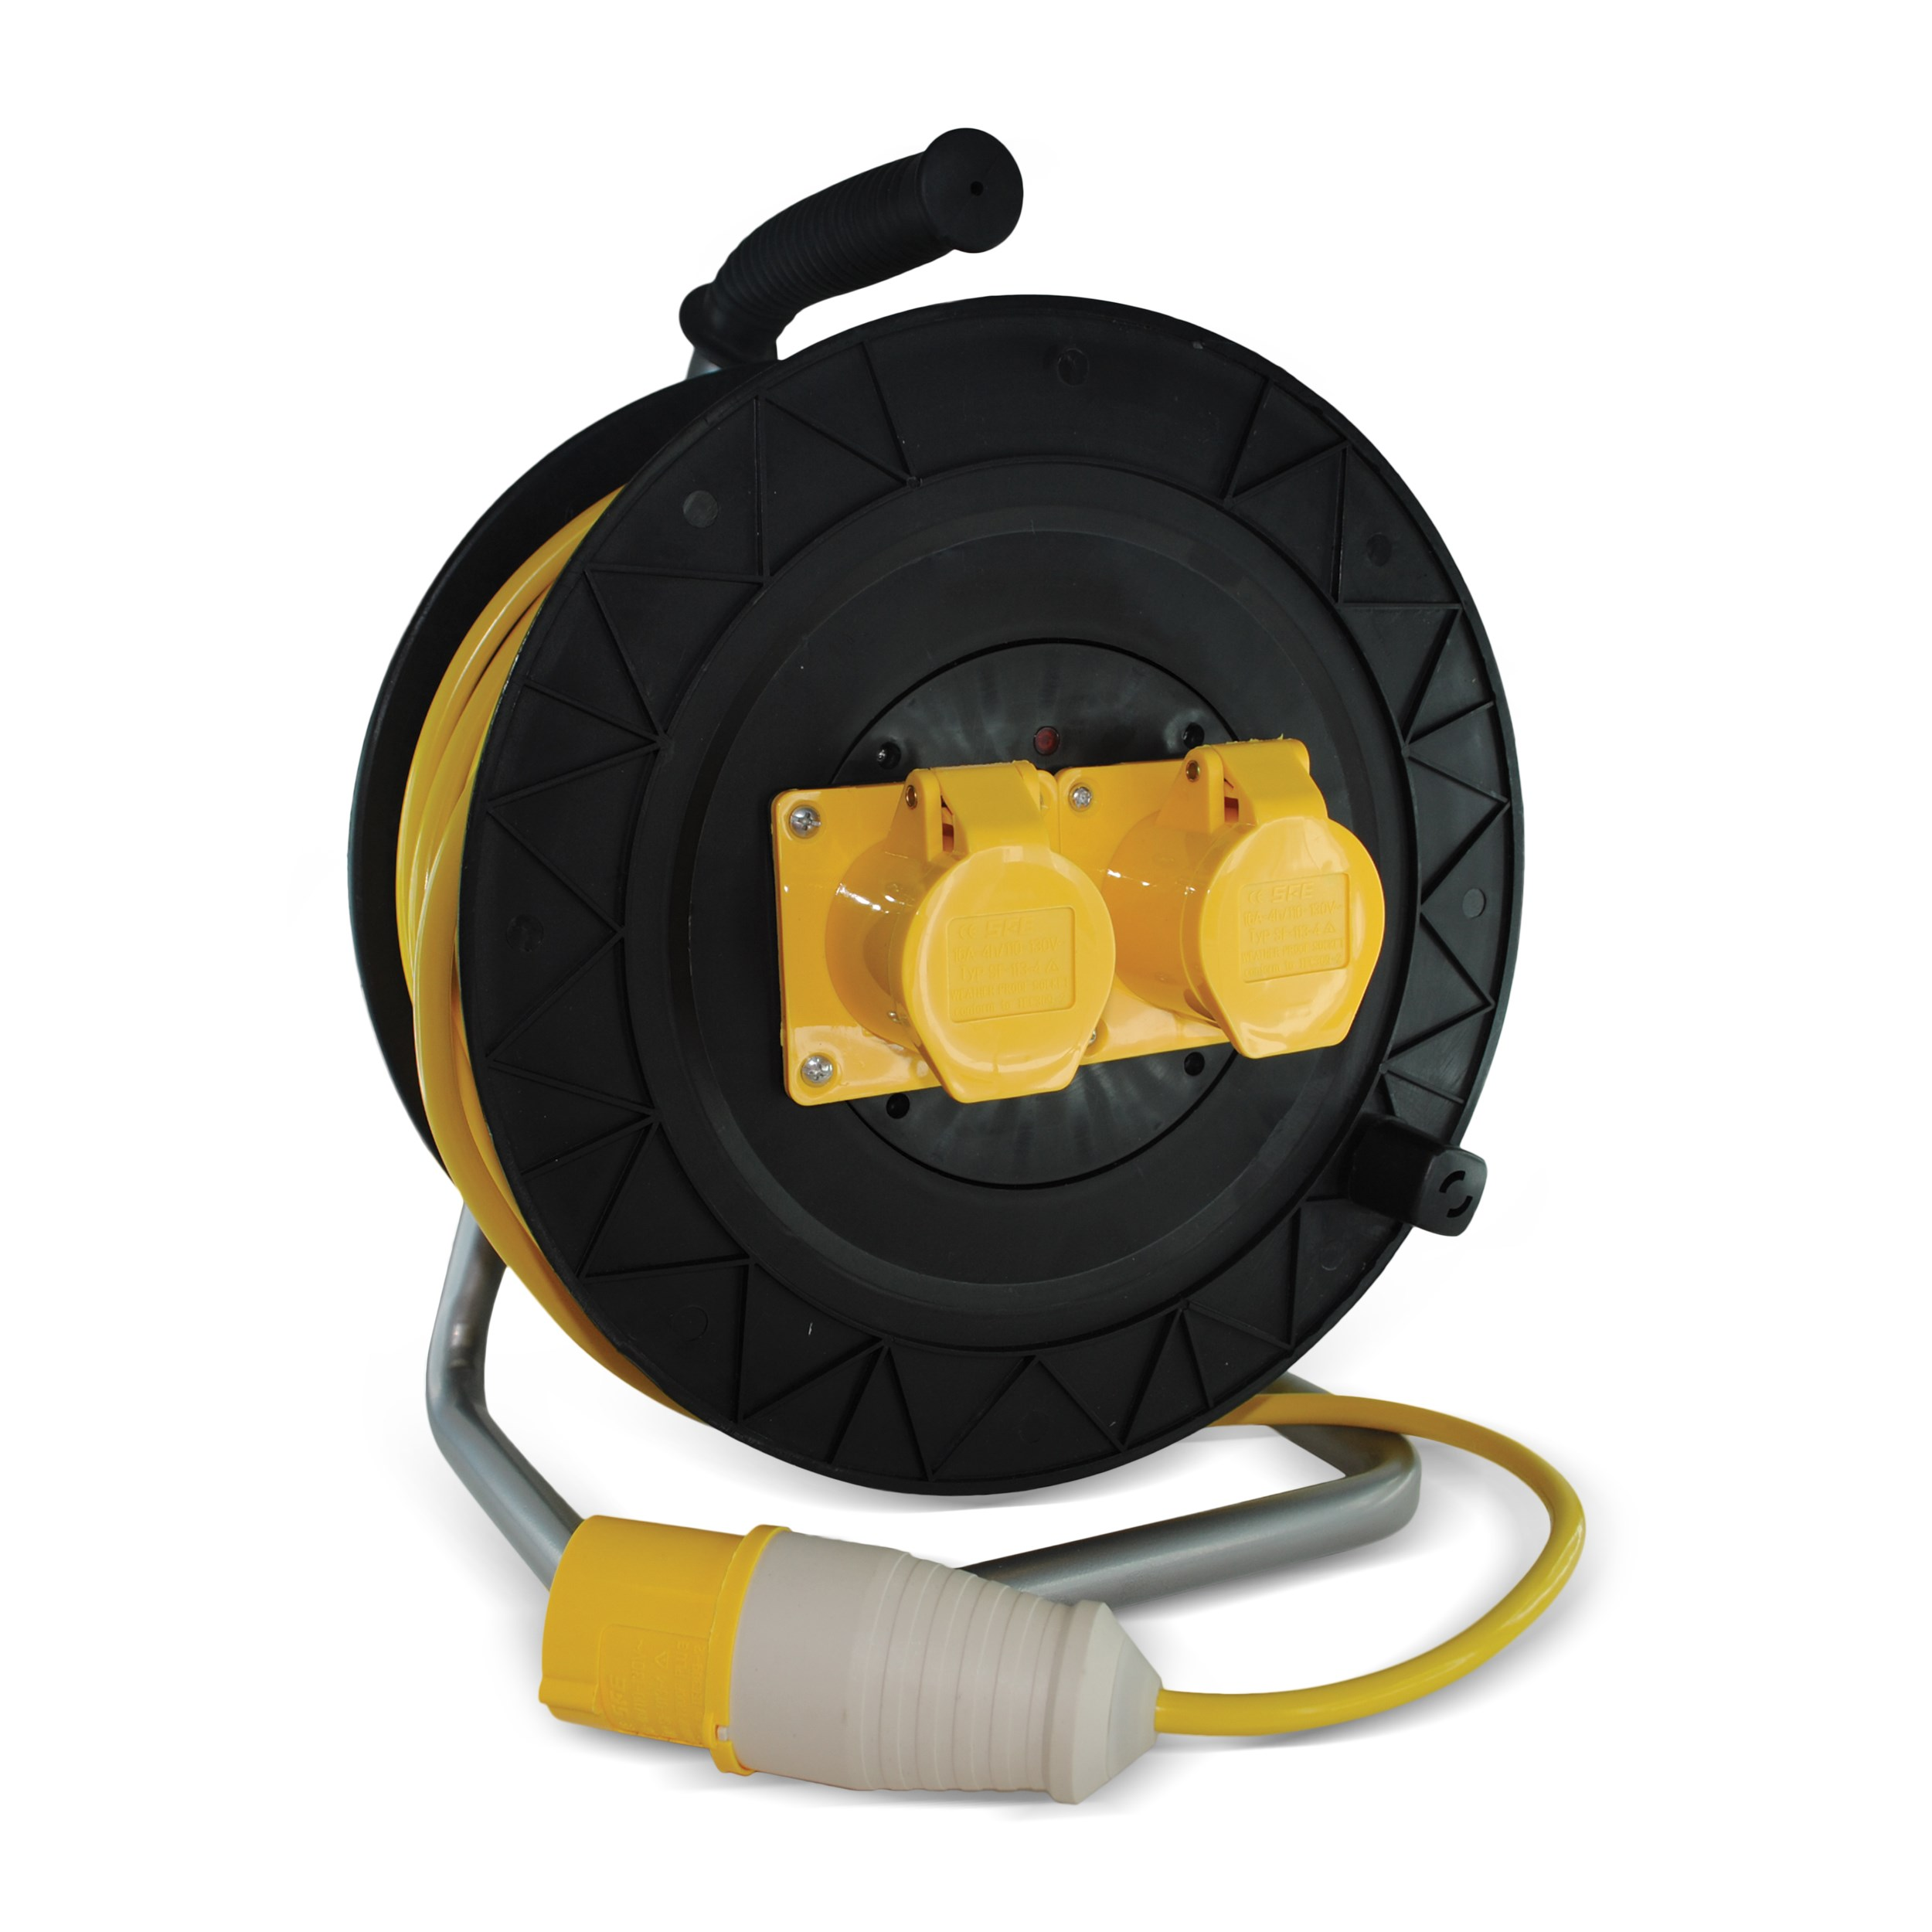 Safeline  Domestic Yellow Artic Cable Reel With 16 Amp Plug - 25 Metre